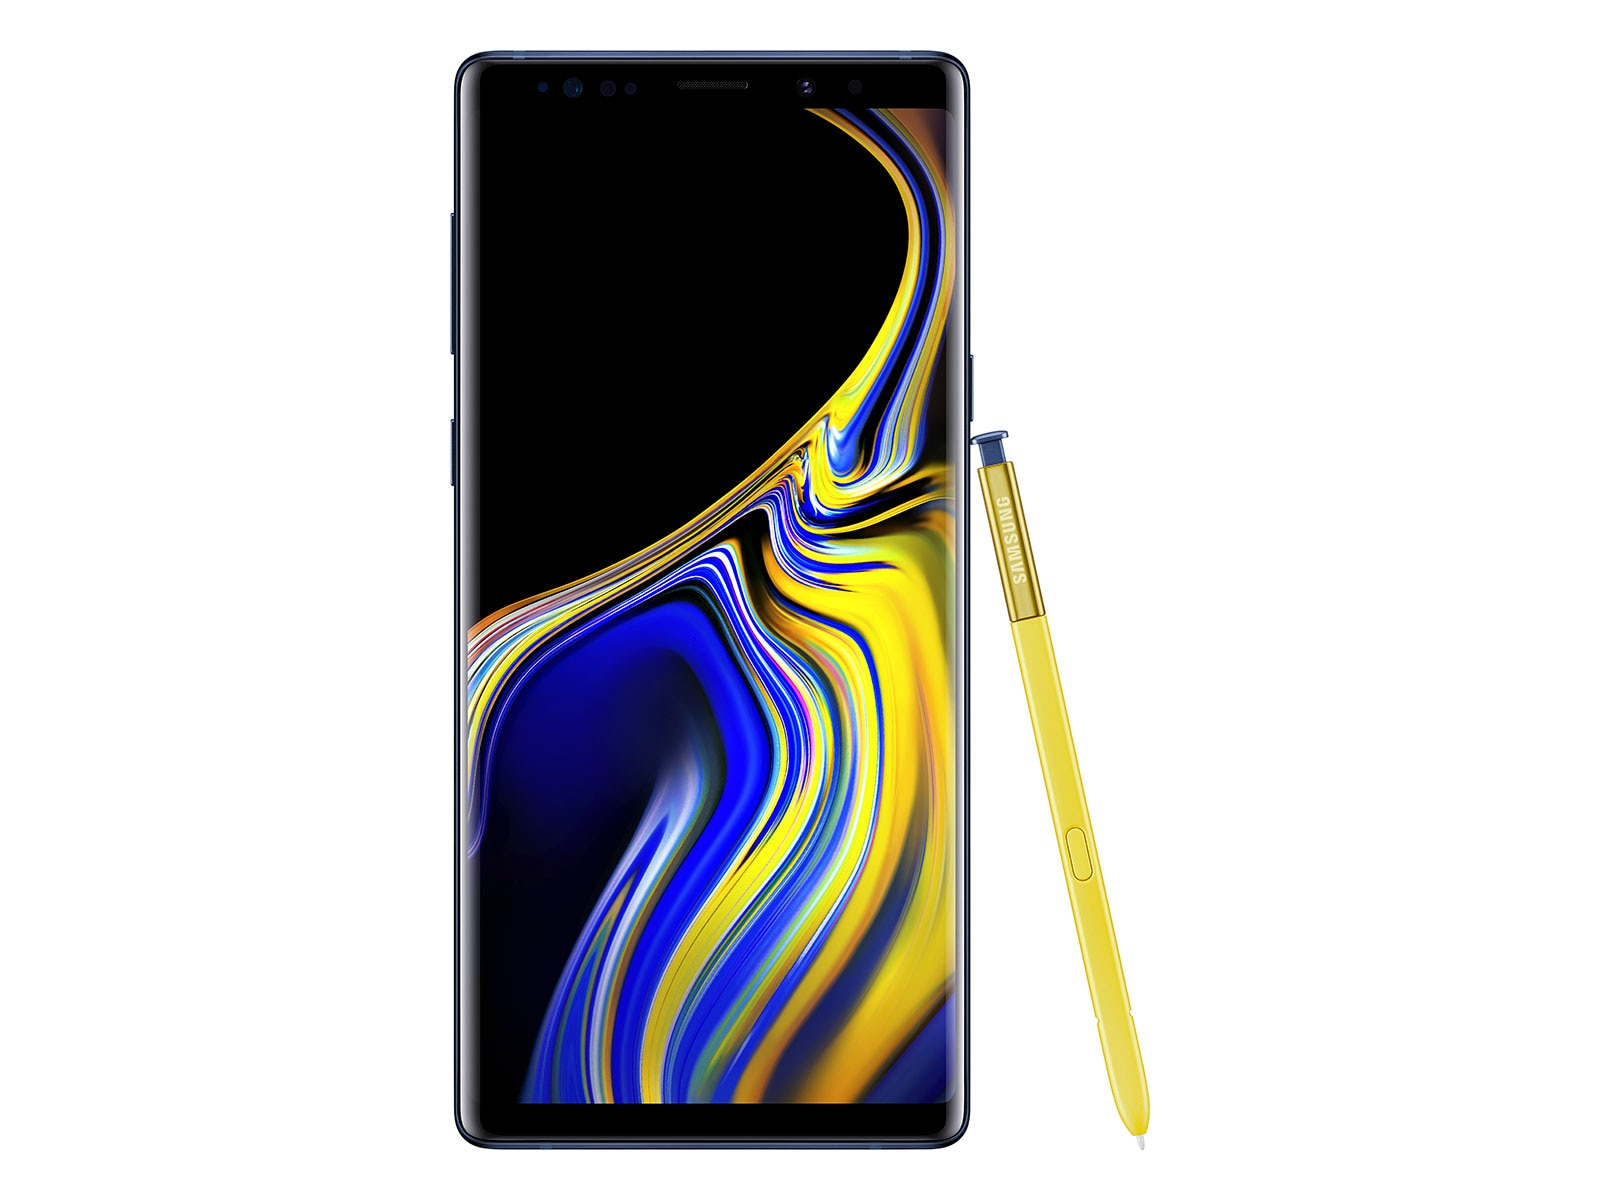 f71b4c1abcc5 Samsung Galaxy Note9 128 GB (Unlocked) : Ocean Blue | Samsung US